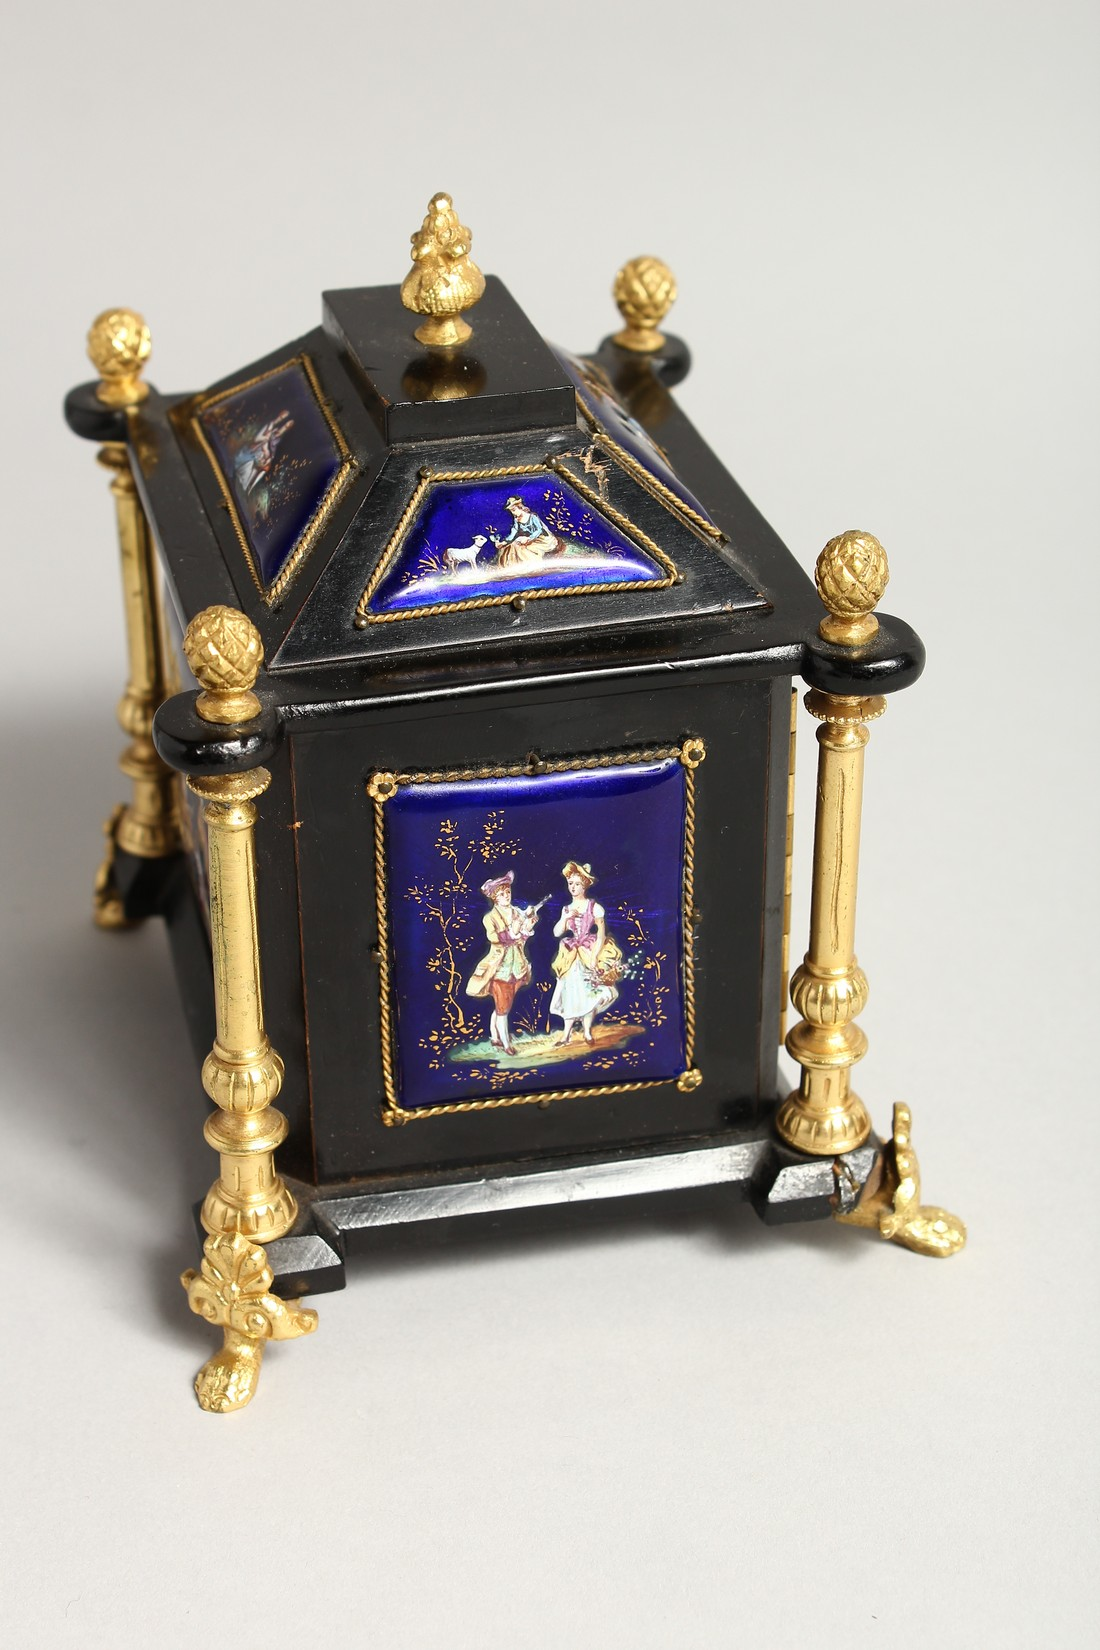 A VERY GOOD 19TH CENTURY LIMOGES CASKET with painted enamel panel, the door opening to reveal 2 - Image 6 of 7